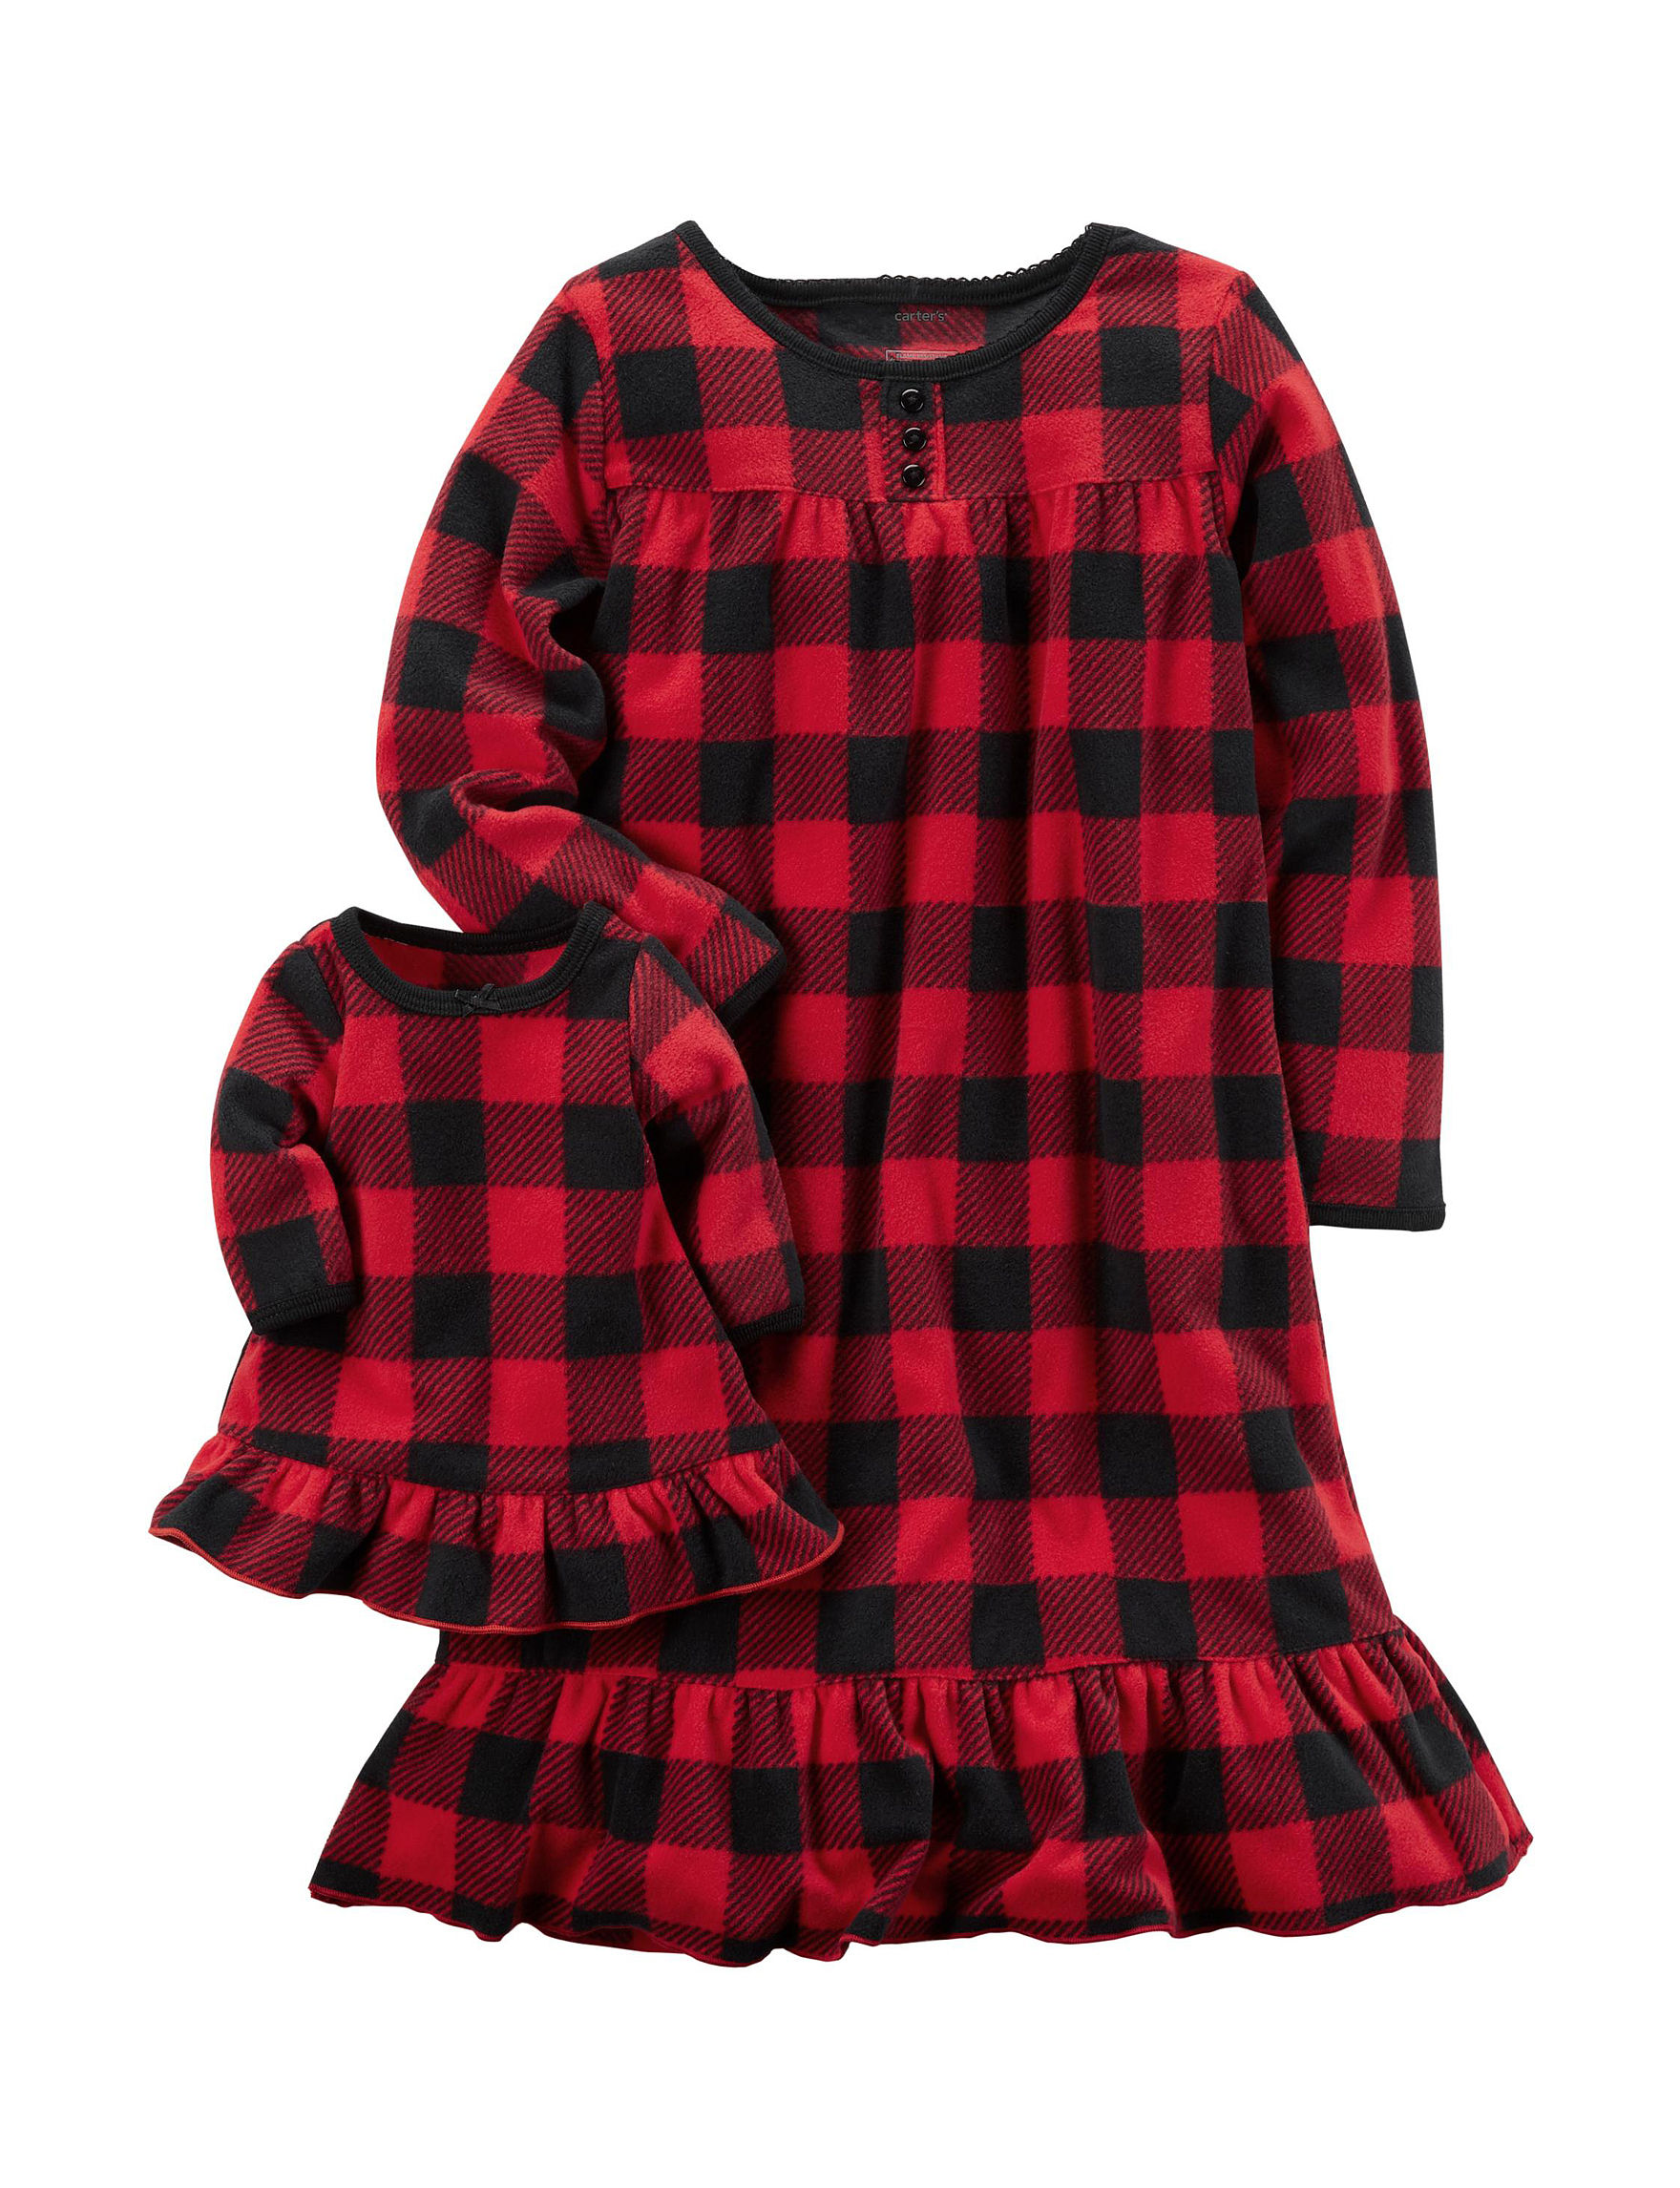 Carter's Red Nightgowns & Sleep Shirts